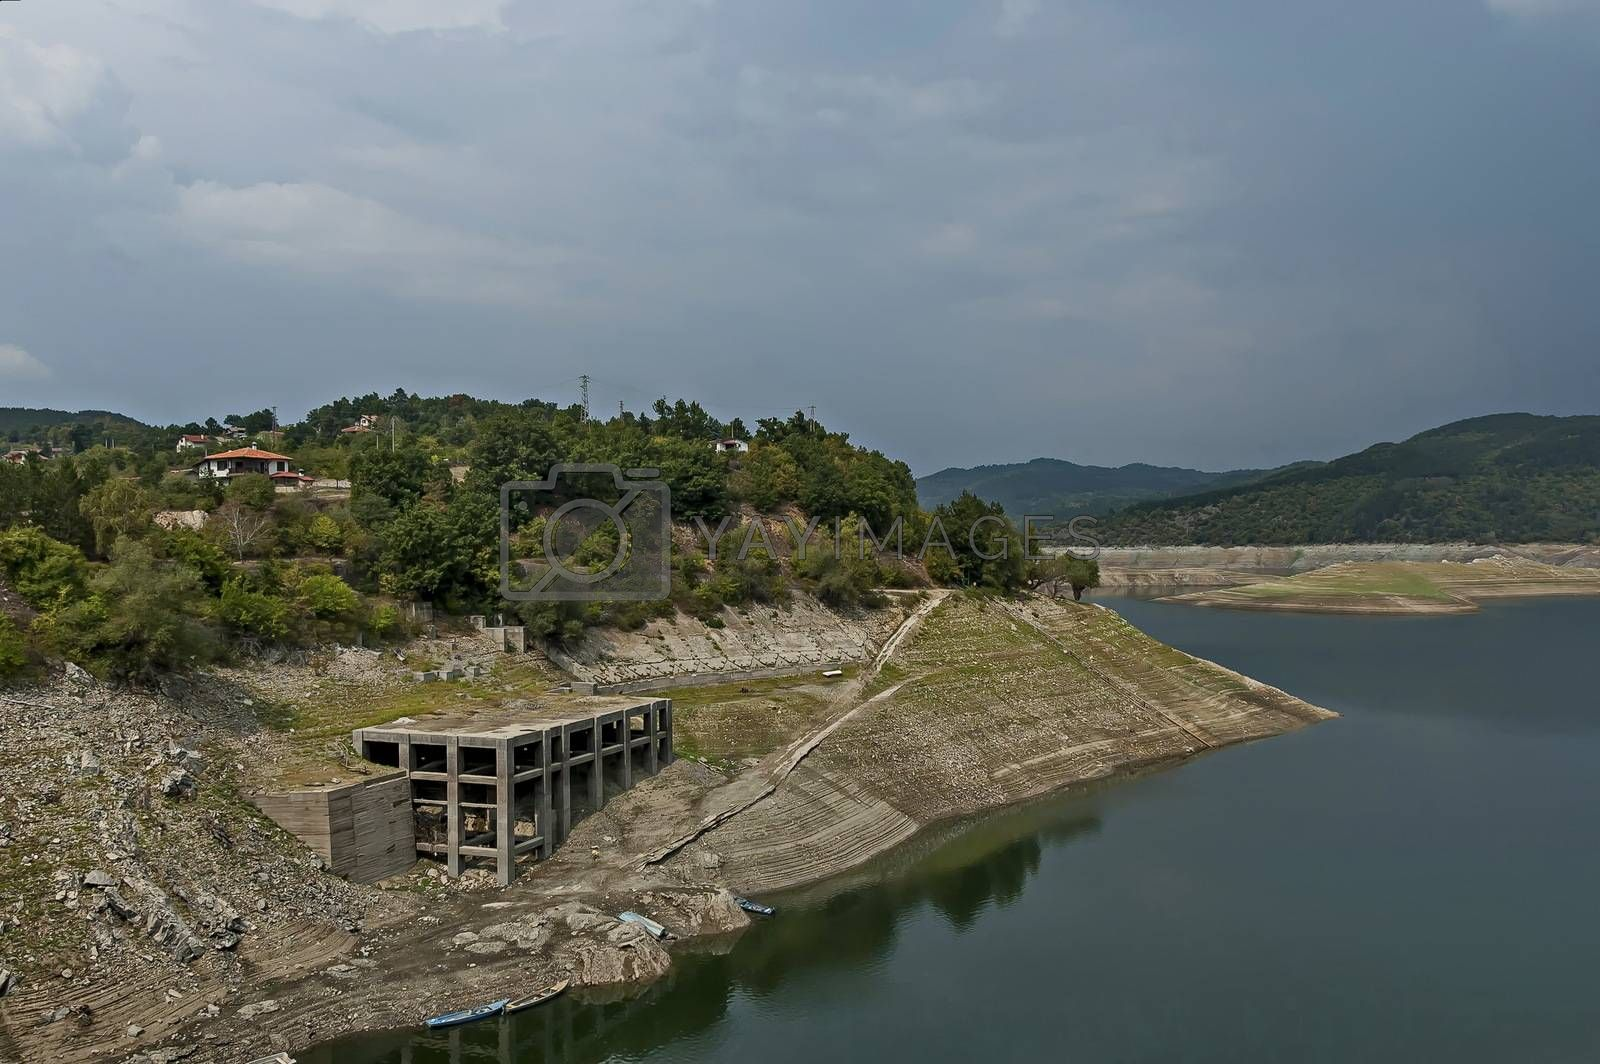 View from Topolnitsa dam, lake or barrage on the river Topolnitsa and part from village Muhovo, Ihtiman region, Bulgaria, Europe